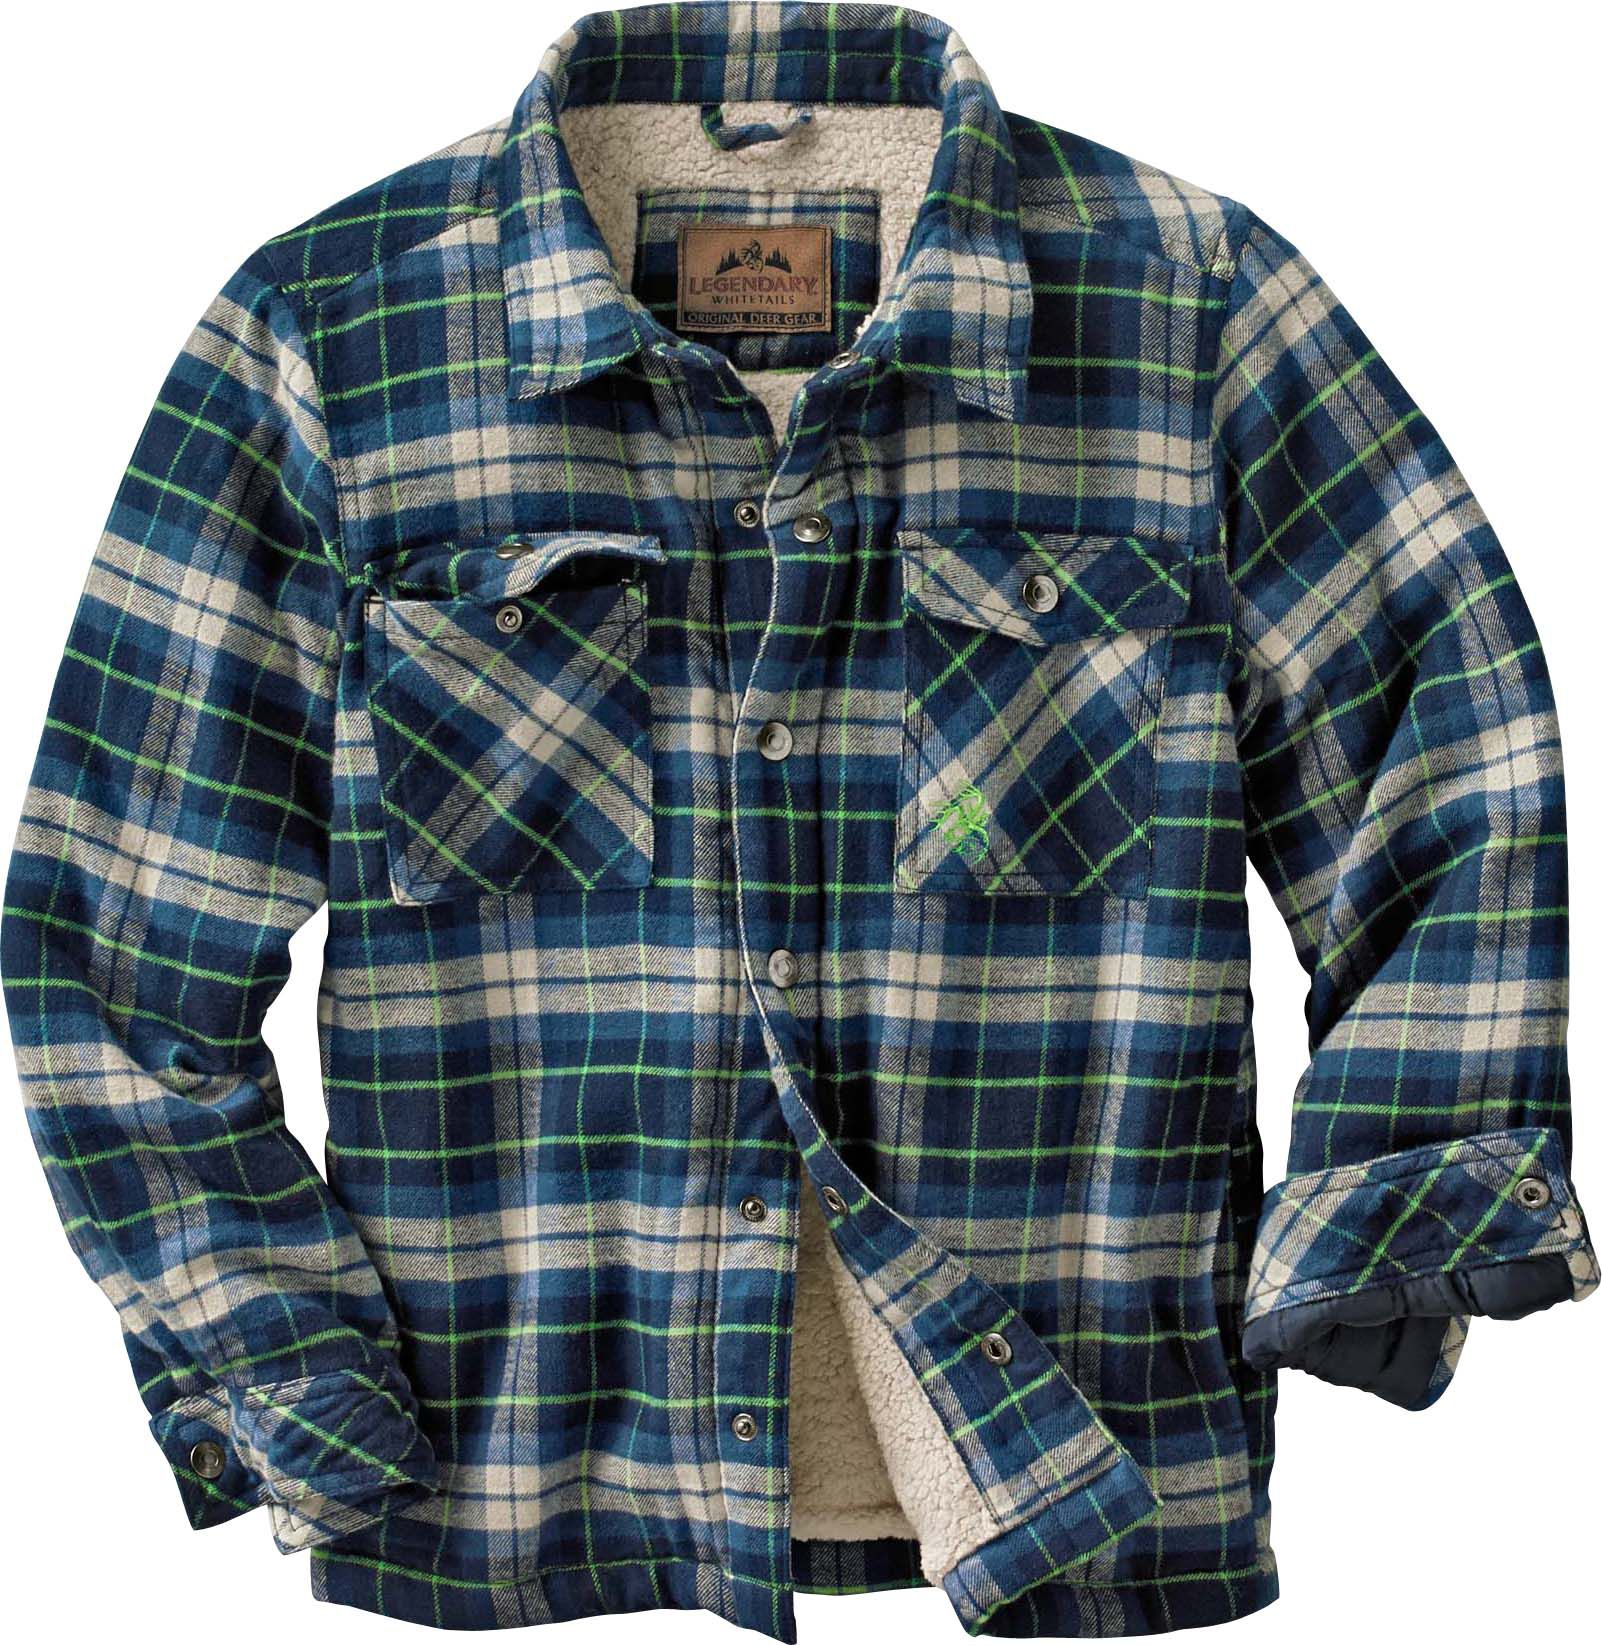 hooded jacket quilted plaid itm lined s insulated jackets dickies fleece shirt mens flannel quilt ebay